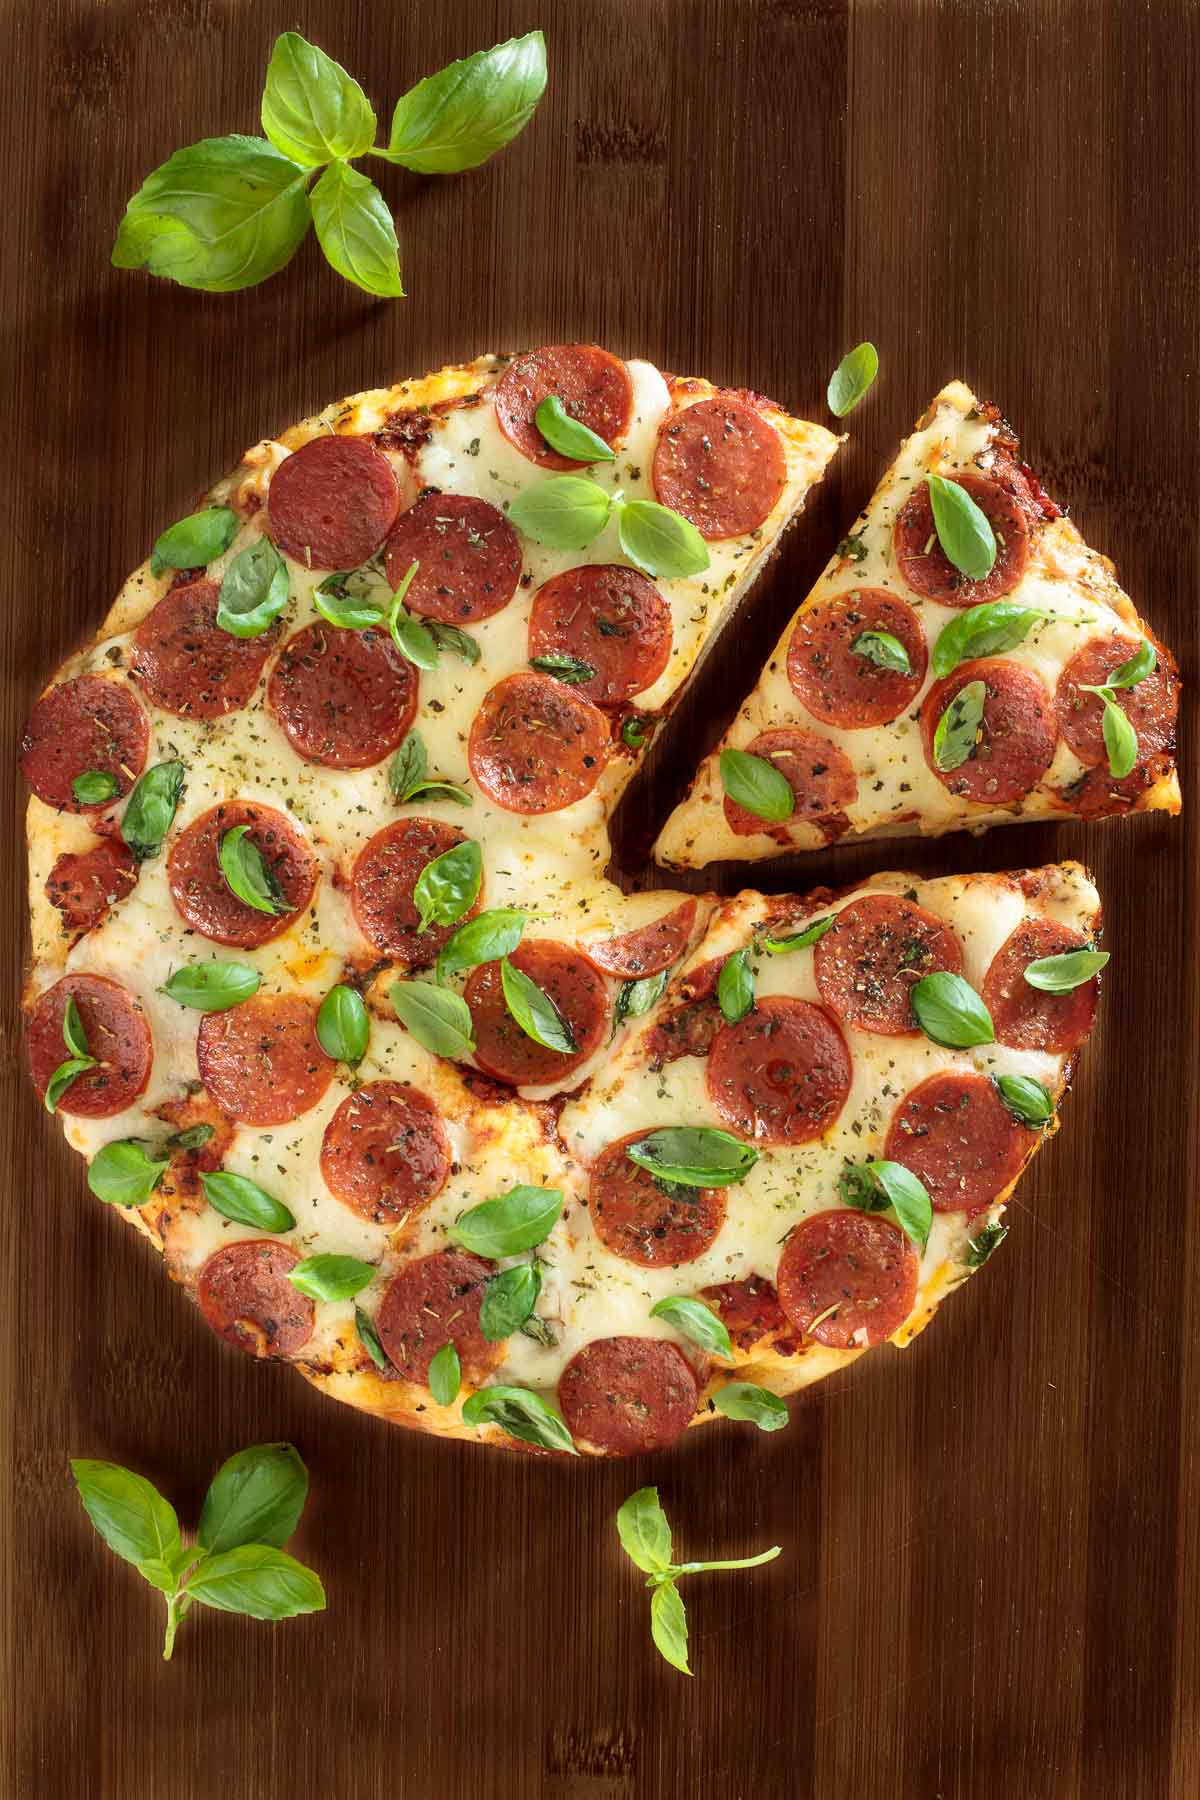 Overhead photo of an Easy Deep Dish Pepperoni Pizza on a wood table with a slice pulled out. Fresh basil garnishes surround the pizza.